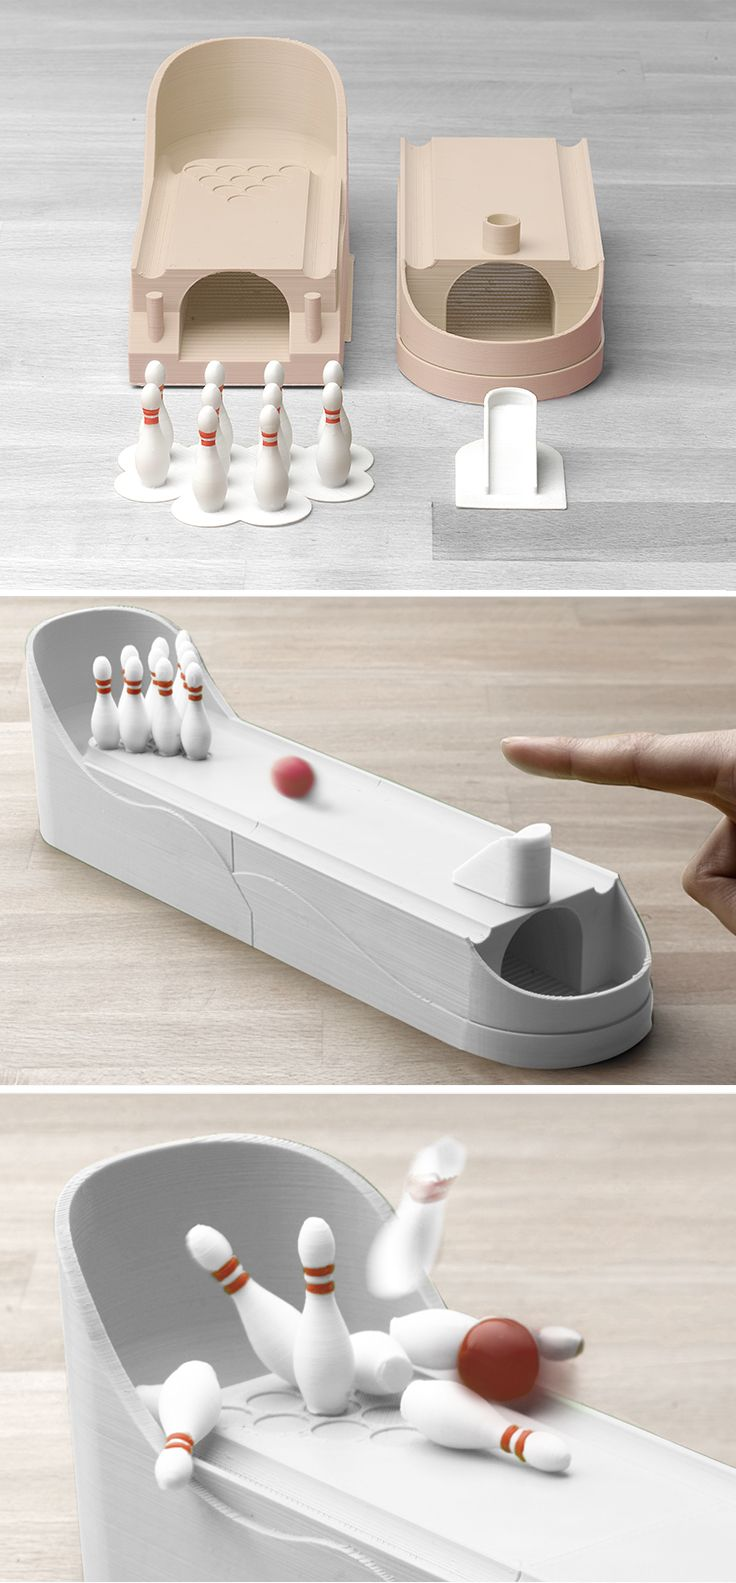 3D Printed Bowling by Matthijs Kok